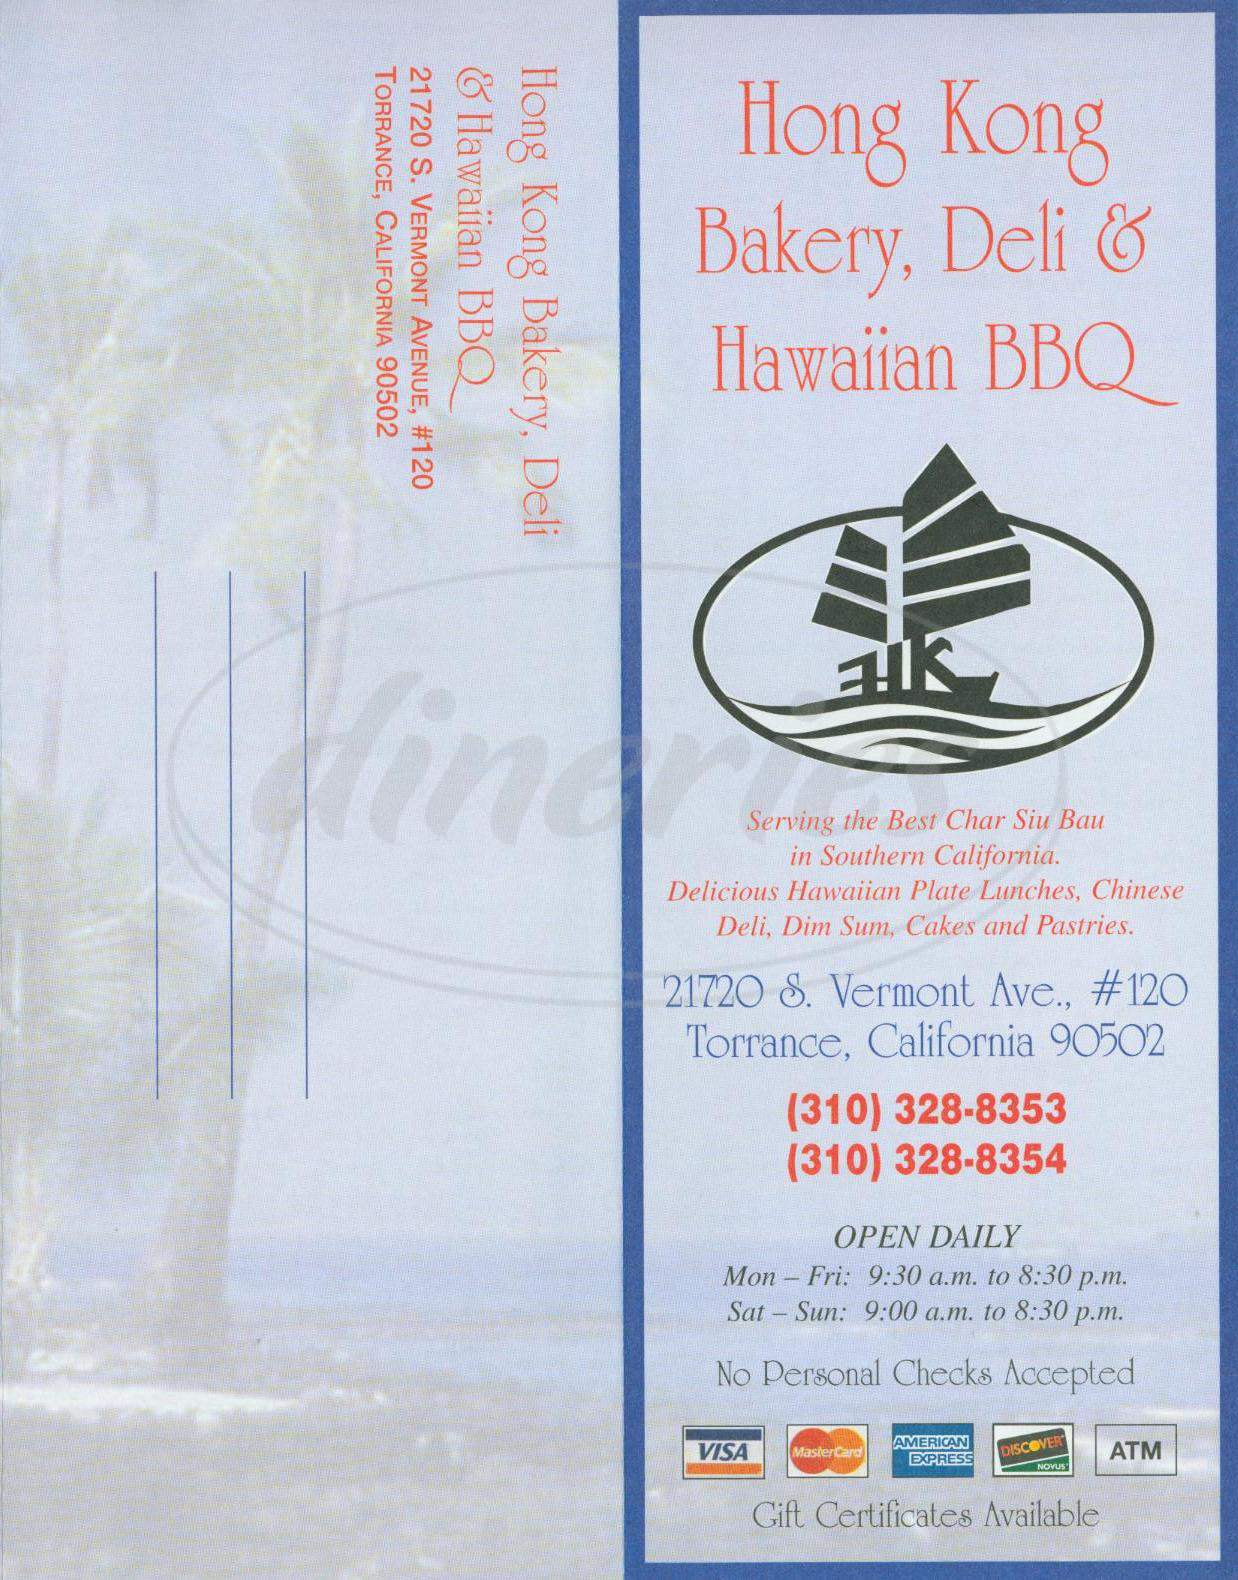 menu for Hong Kong Bakery, Deli & Hawaiin BBQ